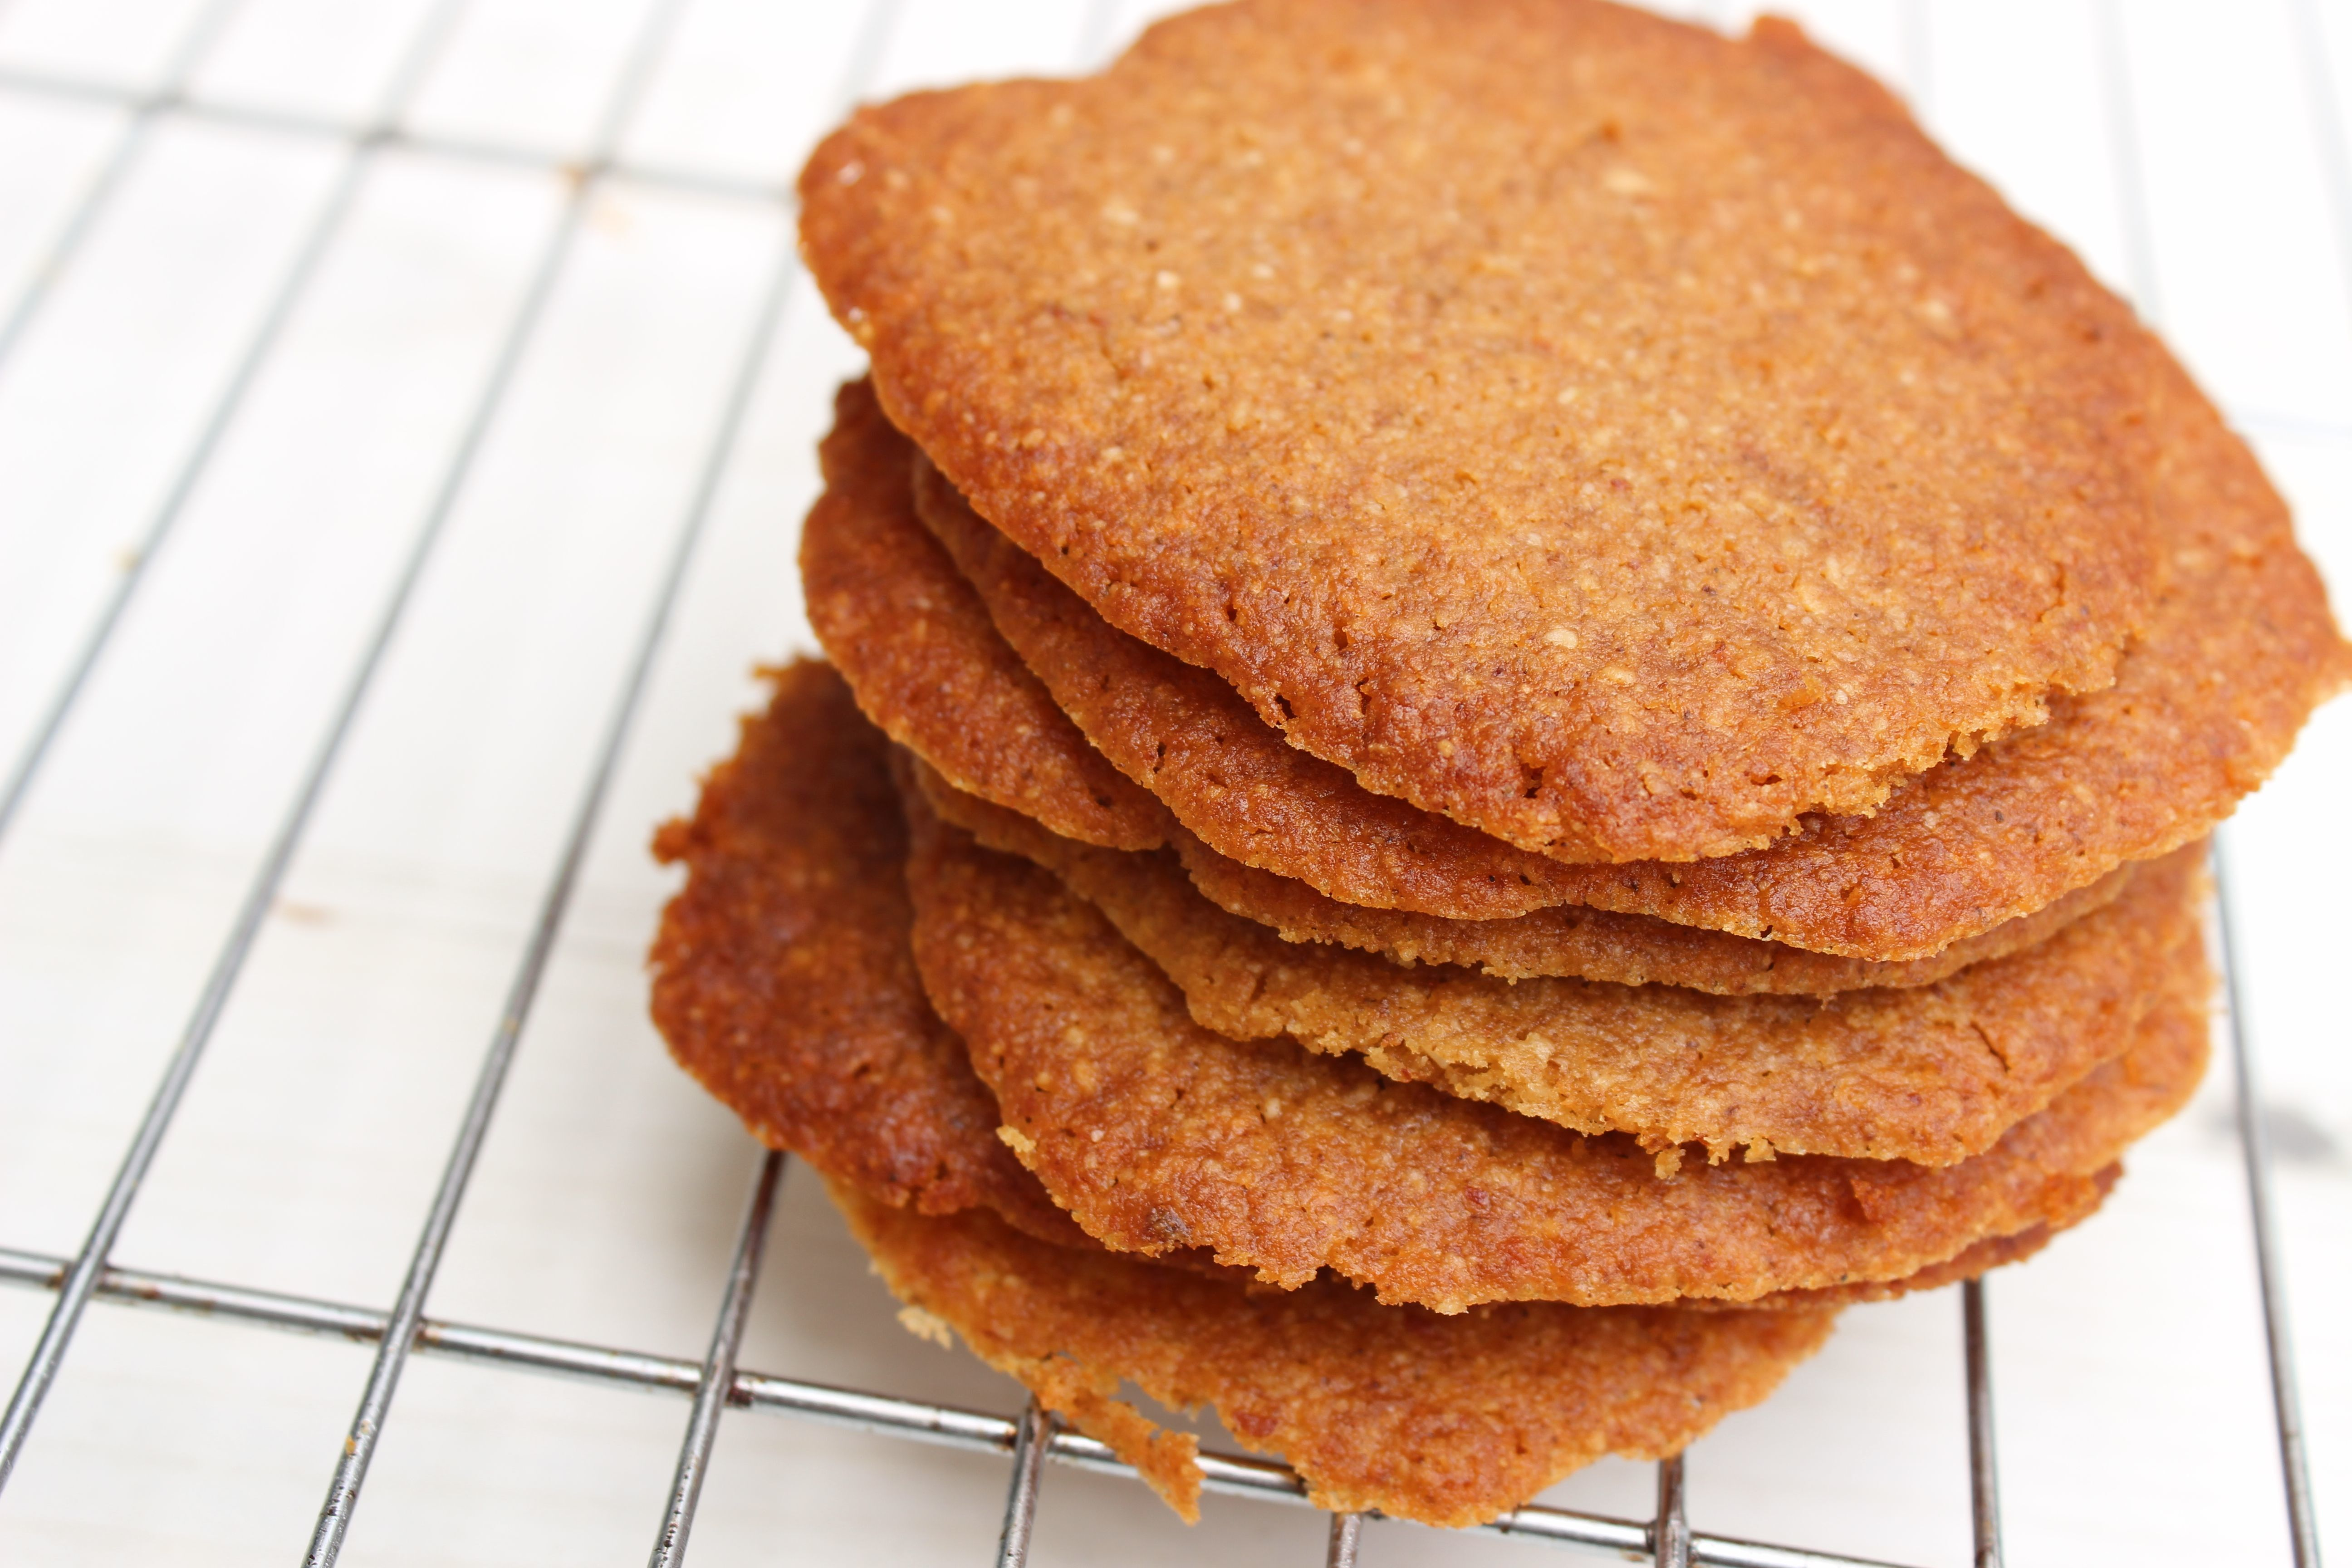 Ginger Biscuits (Gluten, Dairy, Egg, Grain & Refined Sugar-free)